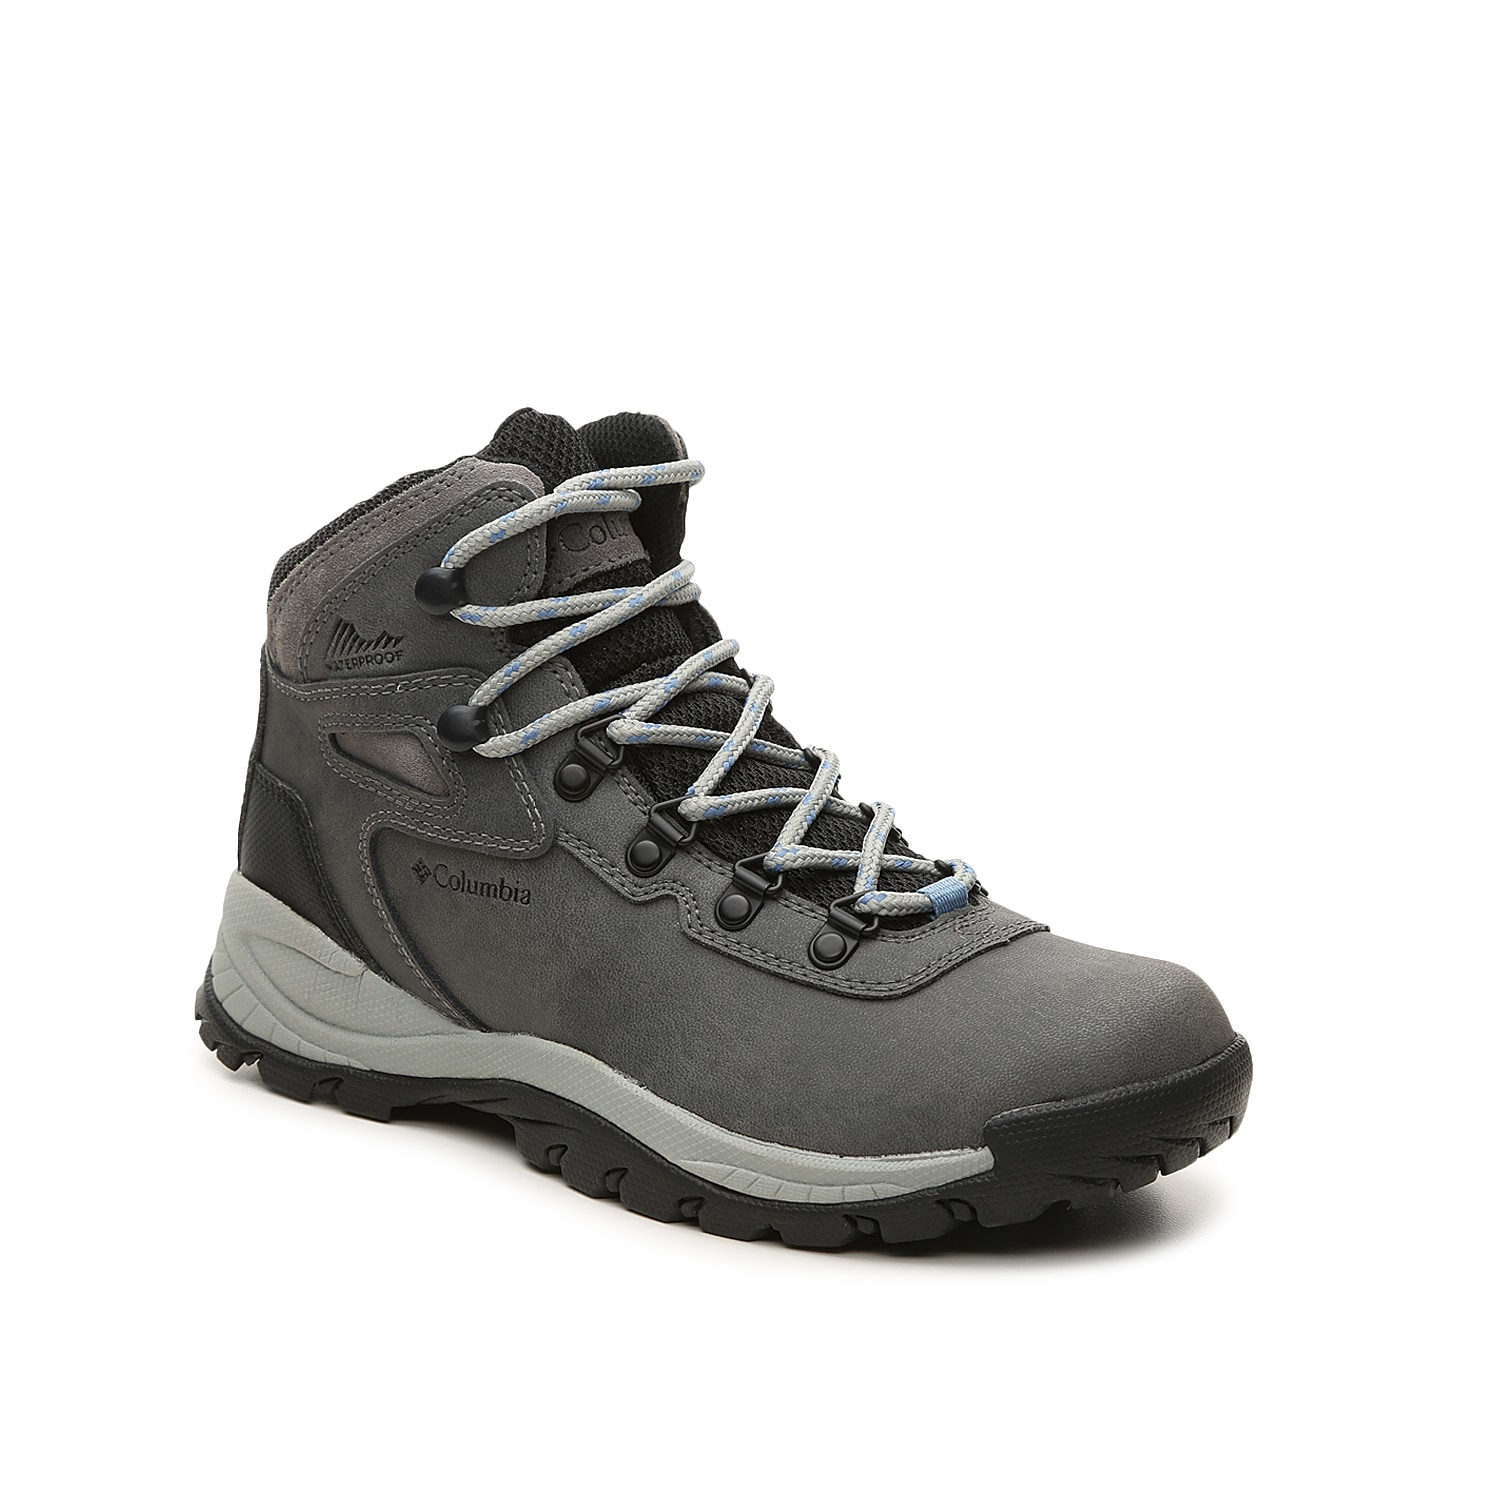 Take to the trails in the women\\\'s Newton Ridge hiking shoes from Columbia that come equipped with a weather-treated finish for versatile wear. The impact-absorbing midsole and serious lug traction keep you going mile after mile.Click here for Boot Measuring Guide.